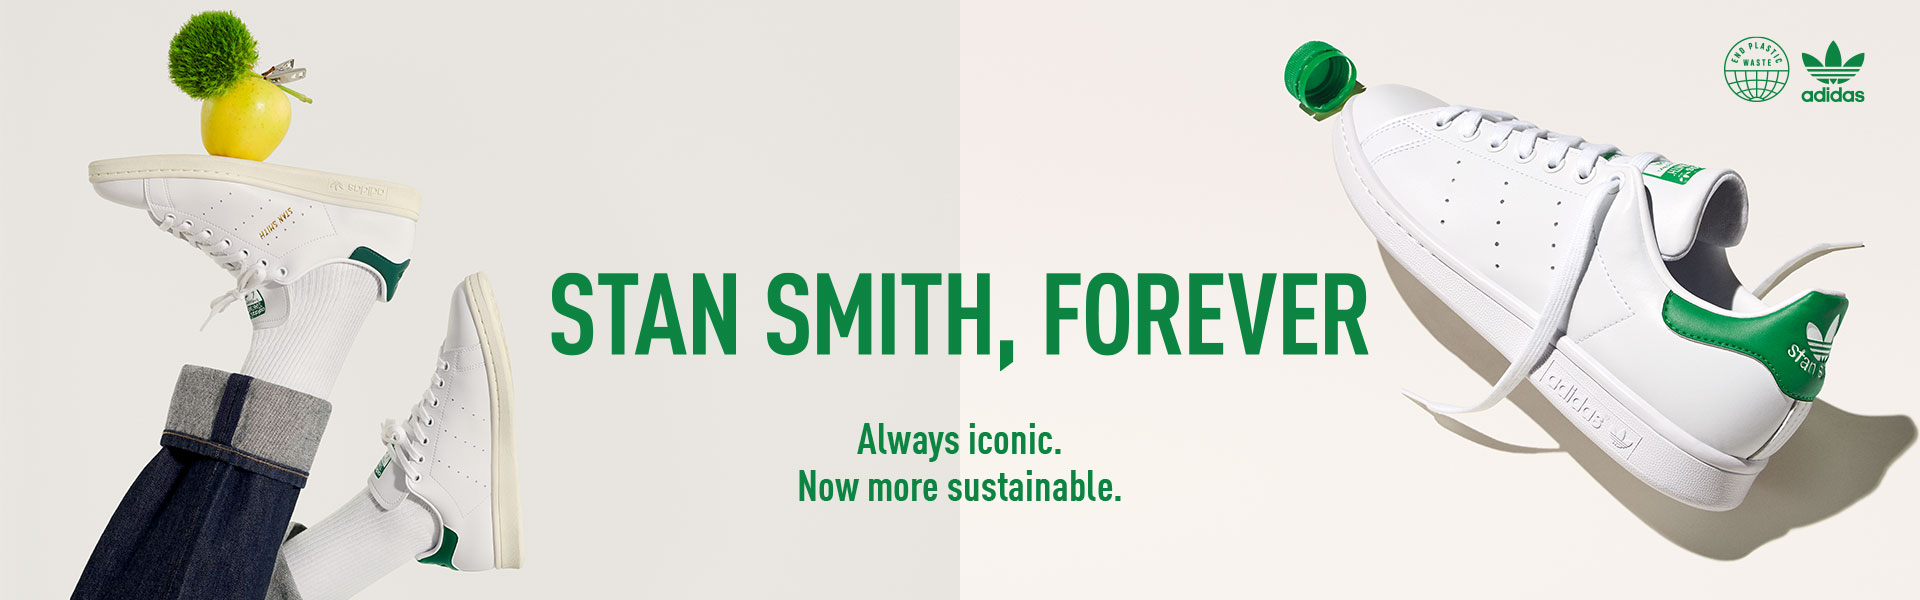 stan-smith-forever